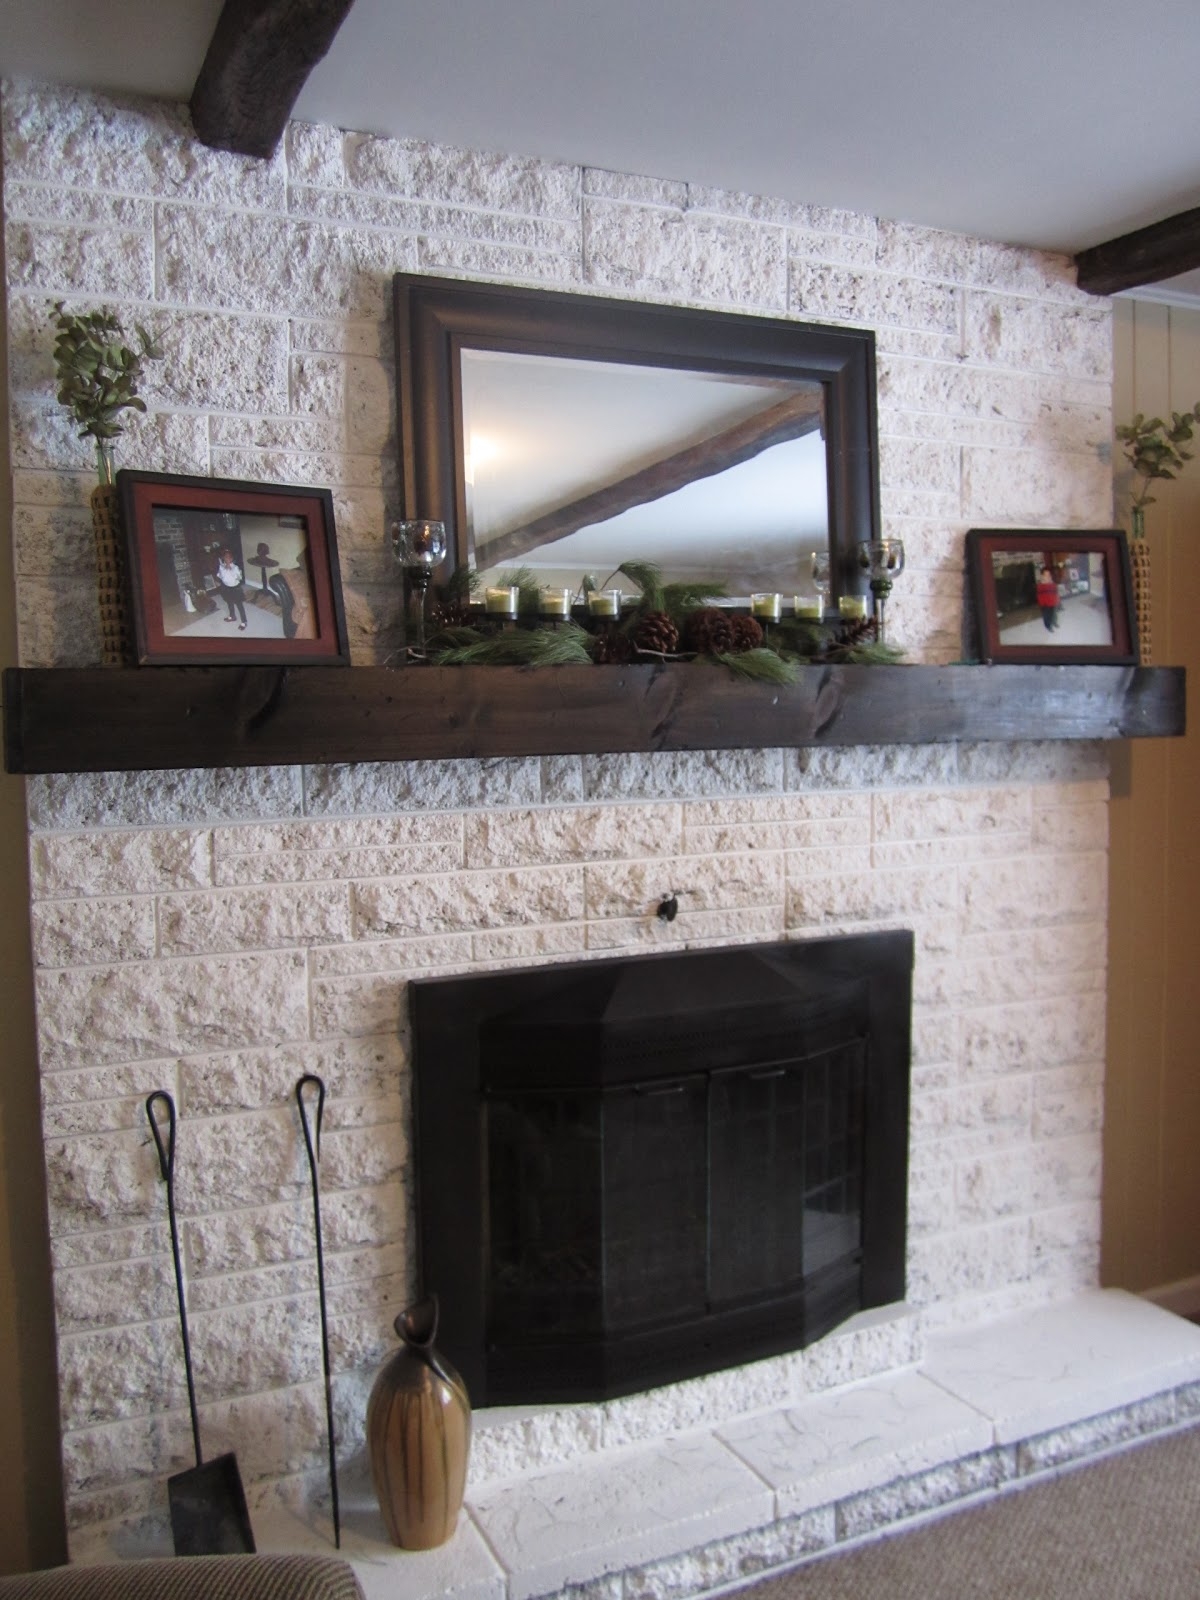 The Making Of A Slip Covered Mantel Made By Carli